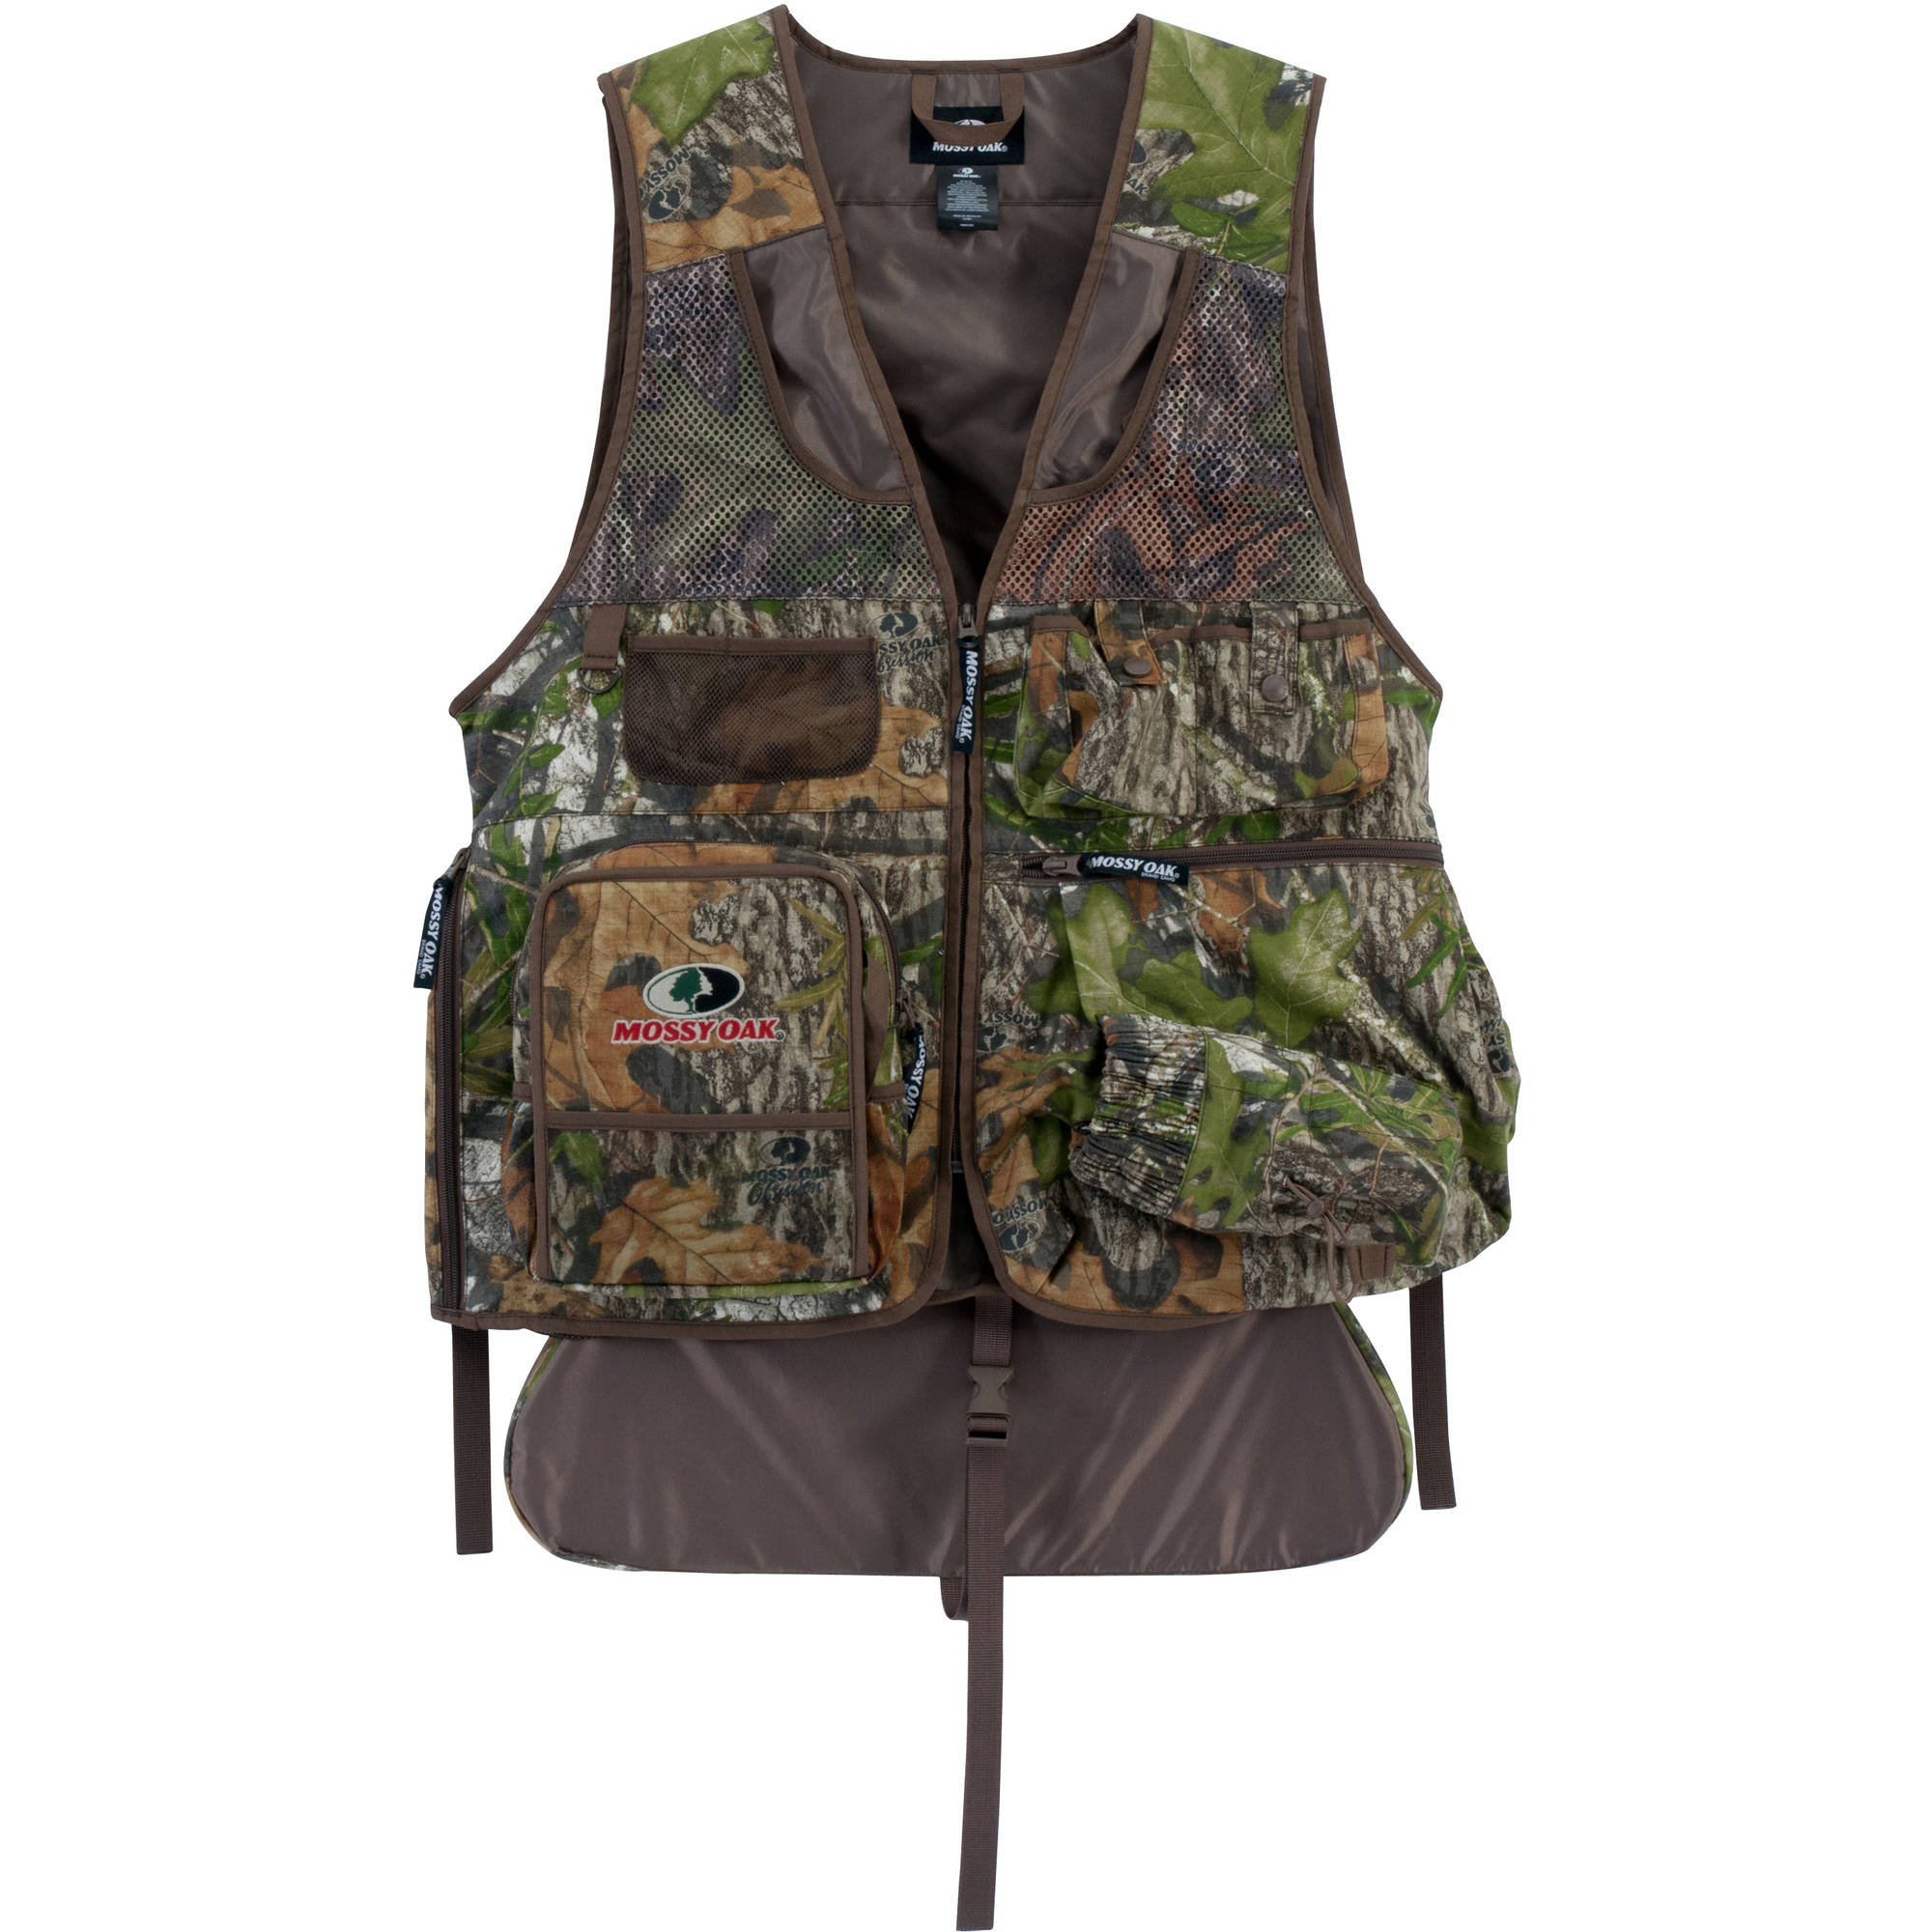 Mossy Oak Men's Camo Turkey Vest with Cushioned Seat